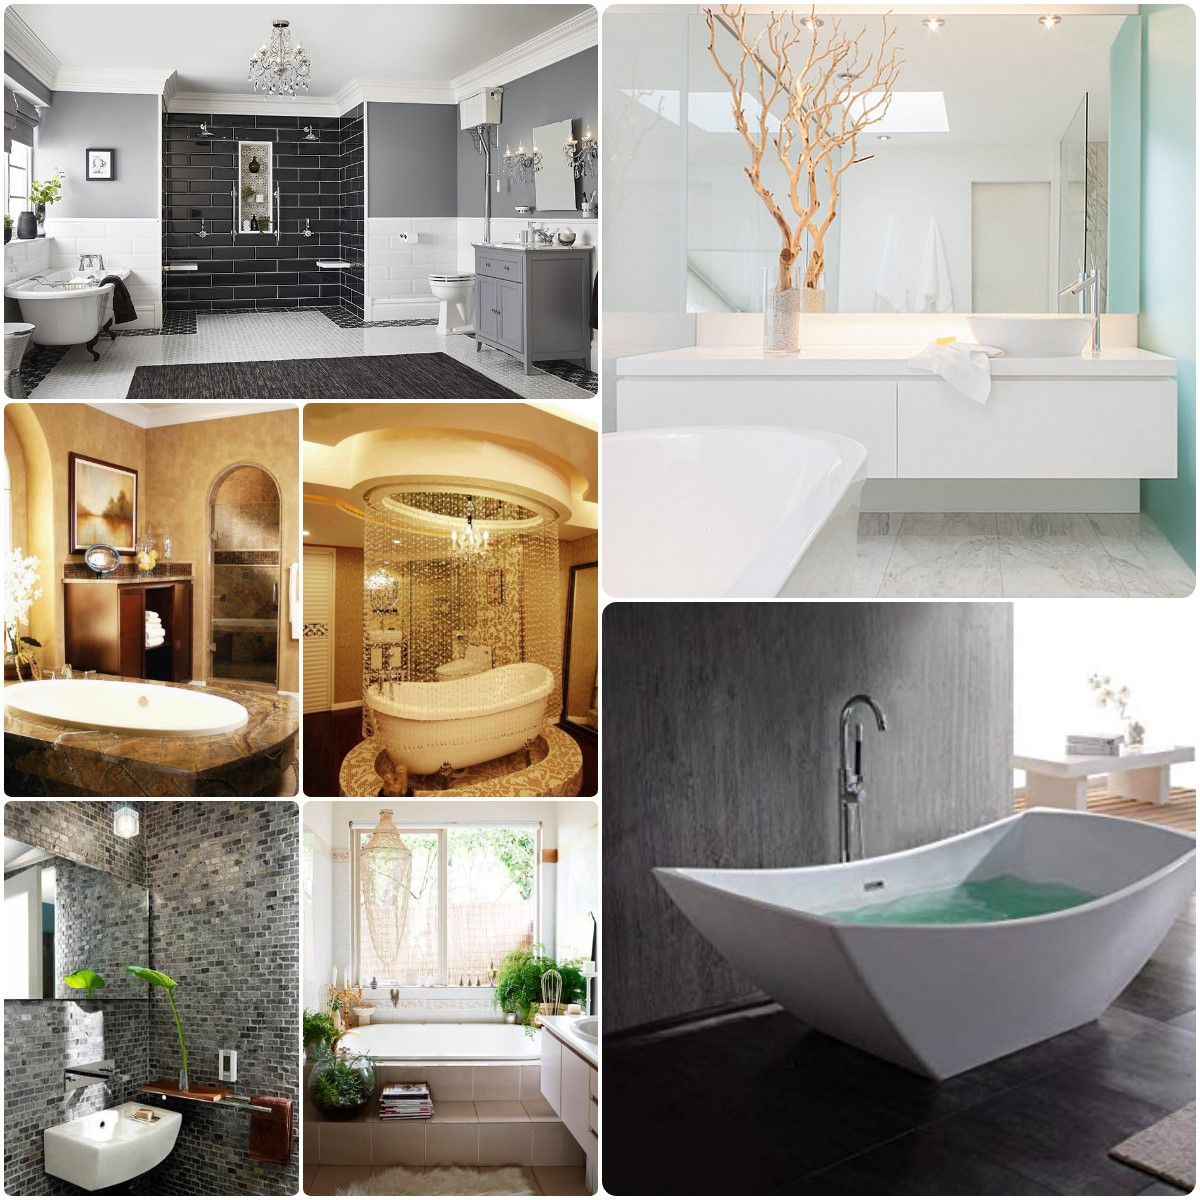 7 Latest Bathroom Styles which will Give Awesome Impact to Your Home